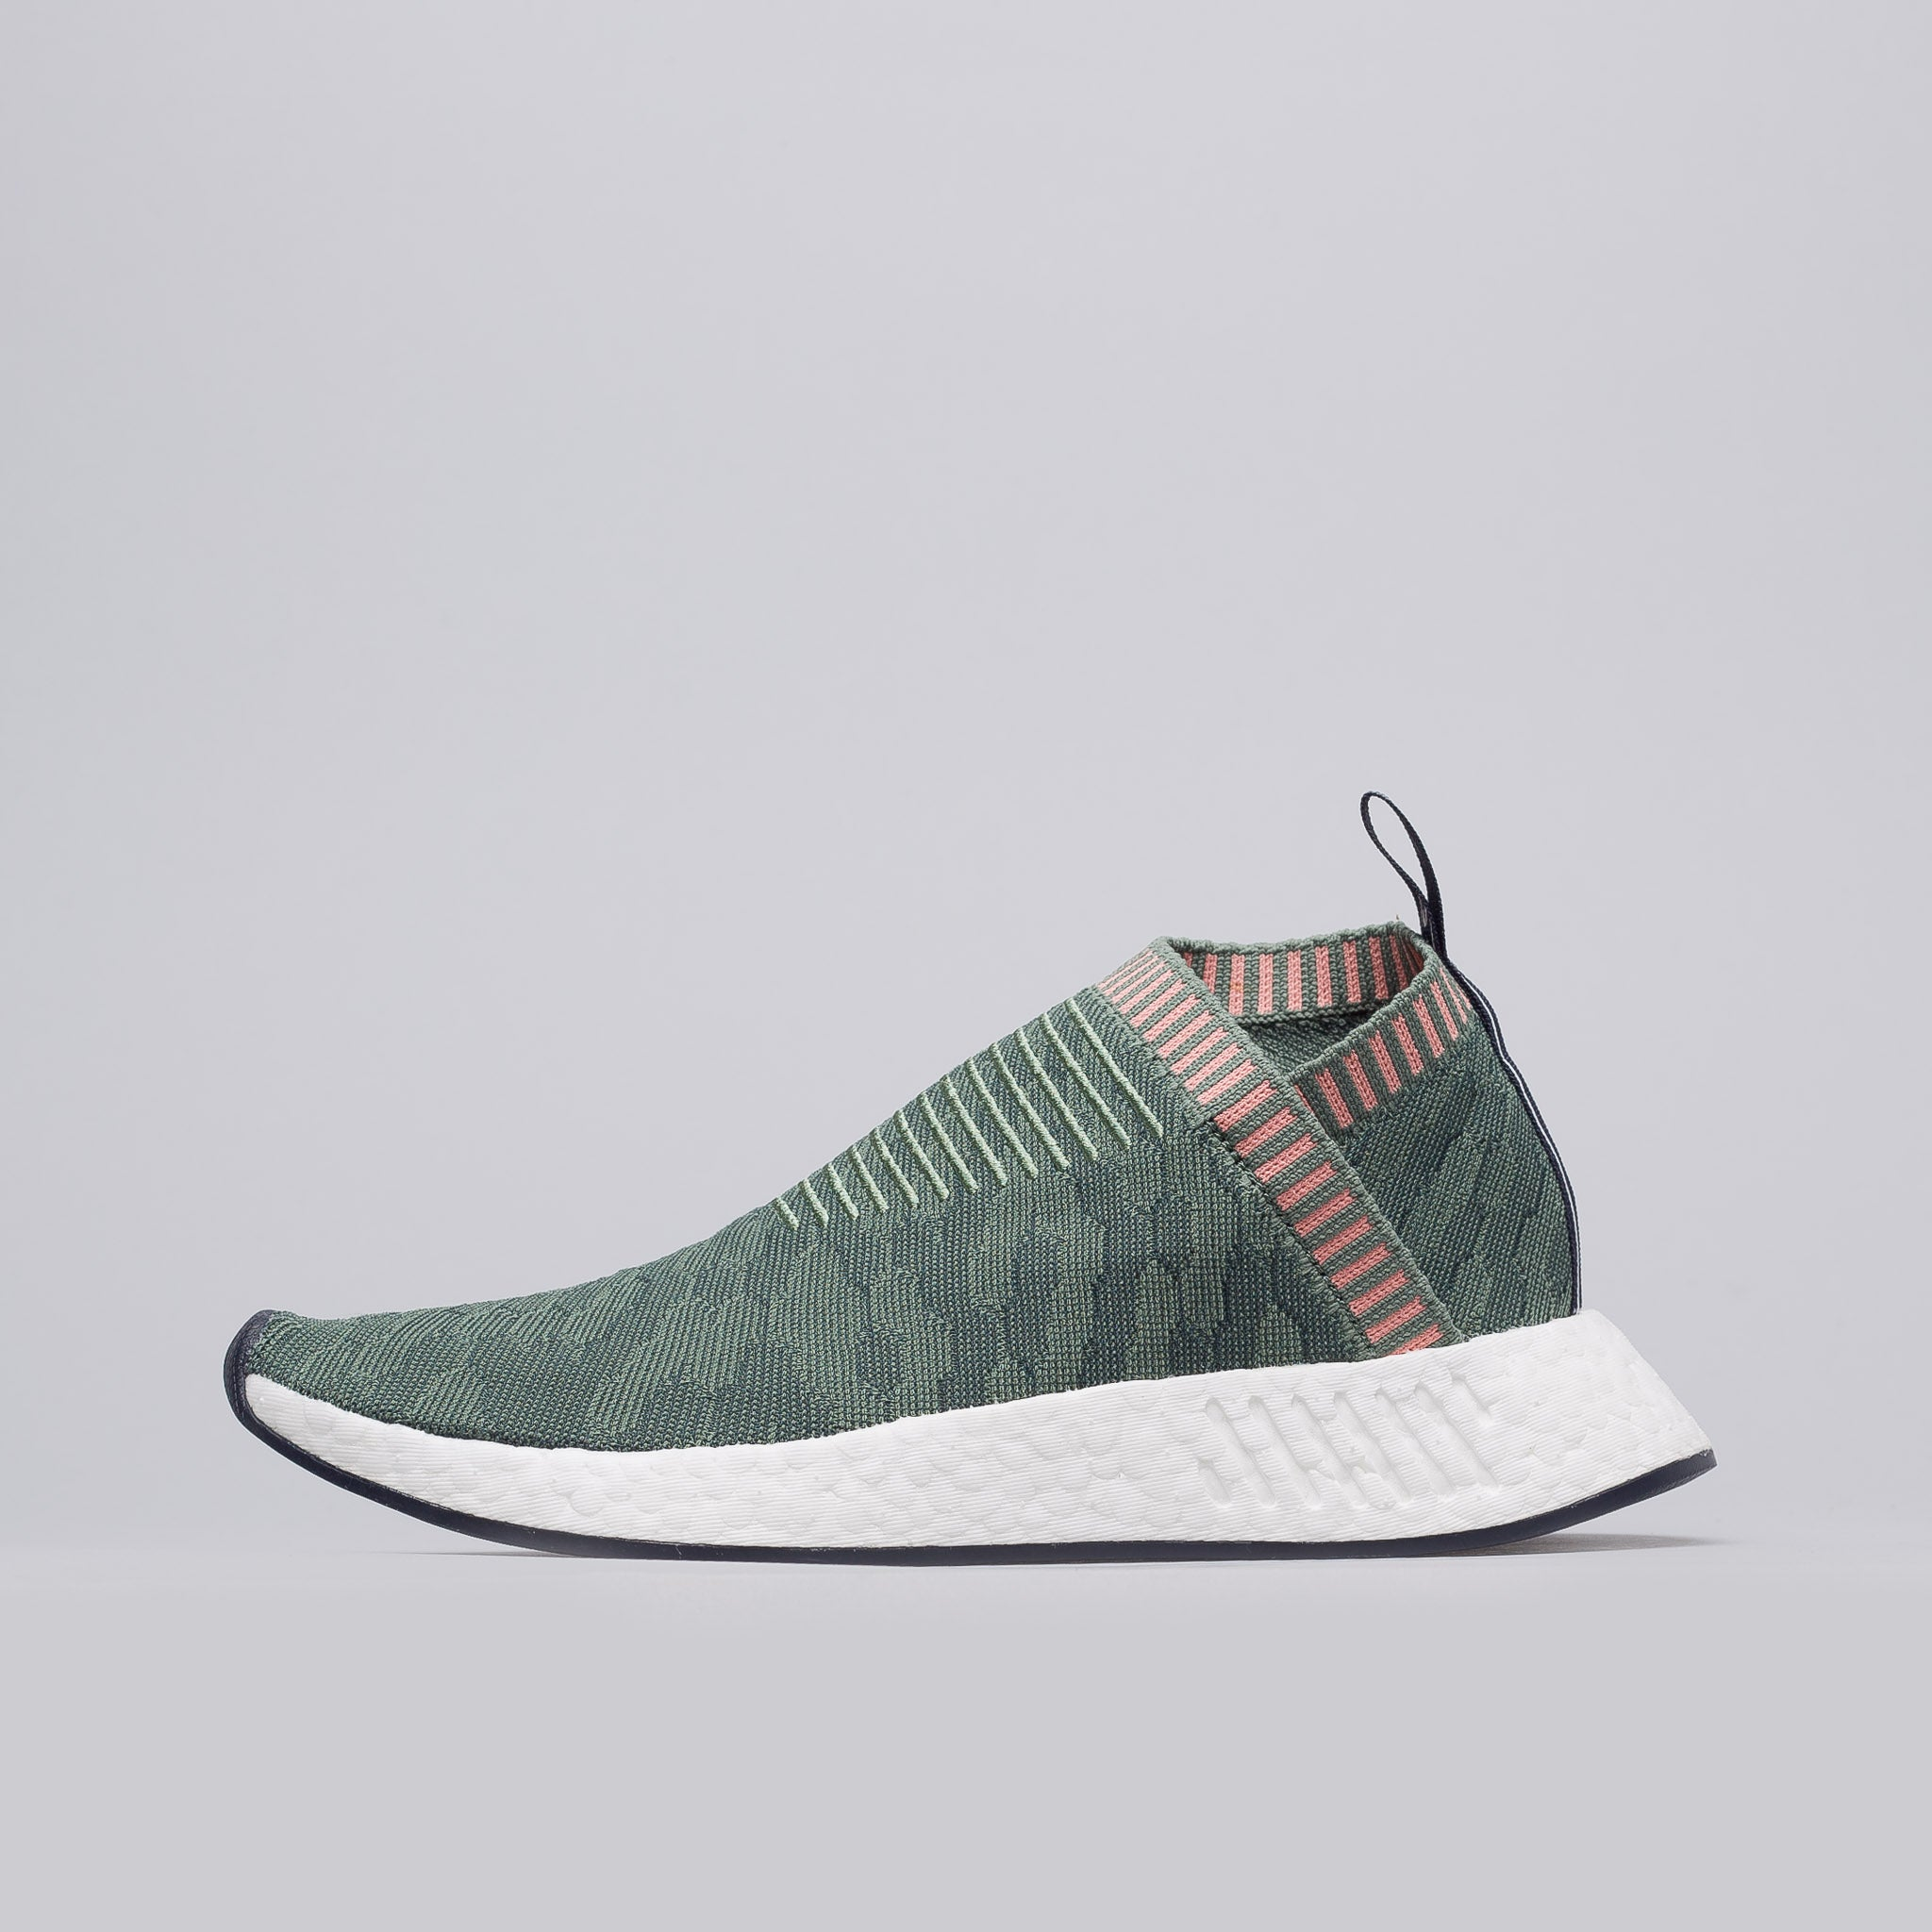 new style 04e50 37acb NMD City Sock 2 Boost Find all the latest NMD release dates, including the adidas  NMD CS2 Primeknit Black Navy   CQ2038, and where to cop them online., ...